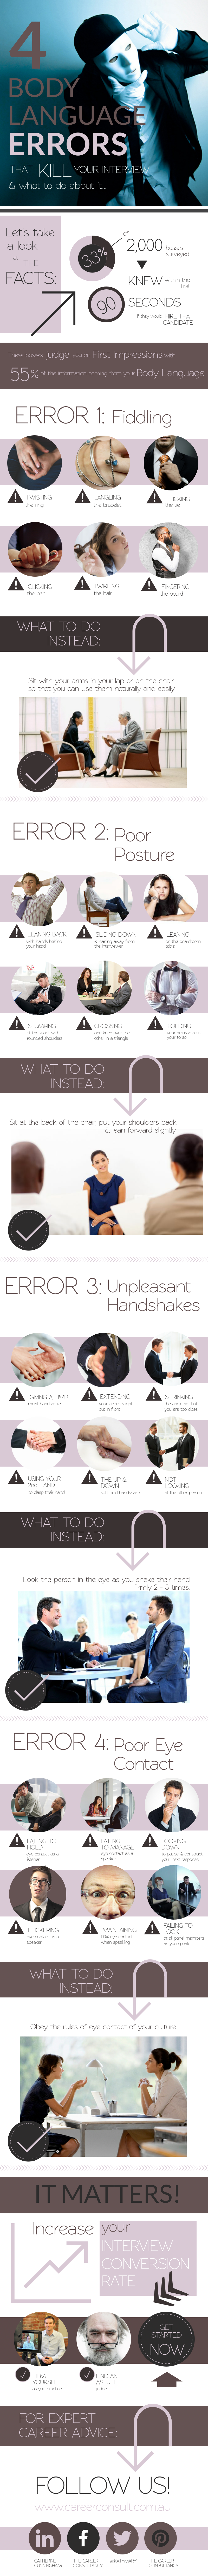 Infographic on 4 Body Language Errors that kill your interview & what to do about it. By Catherine Cunningham from The Career Consultancy.